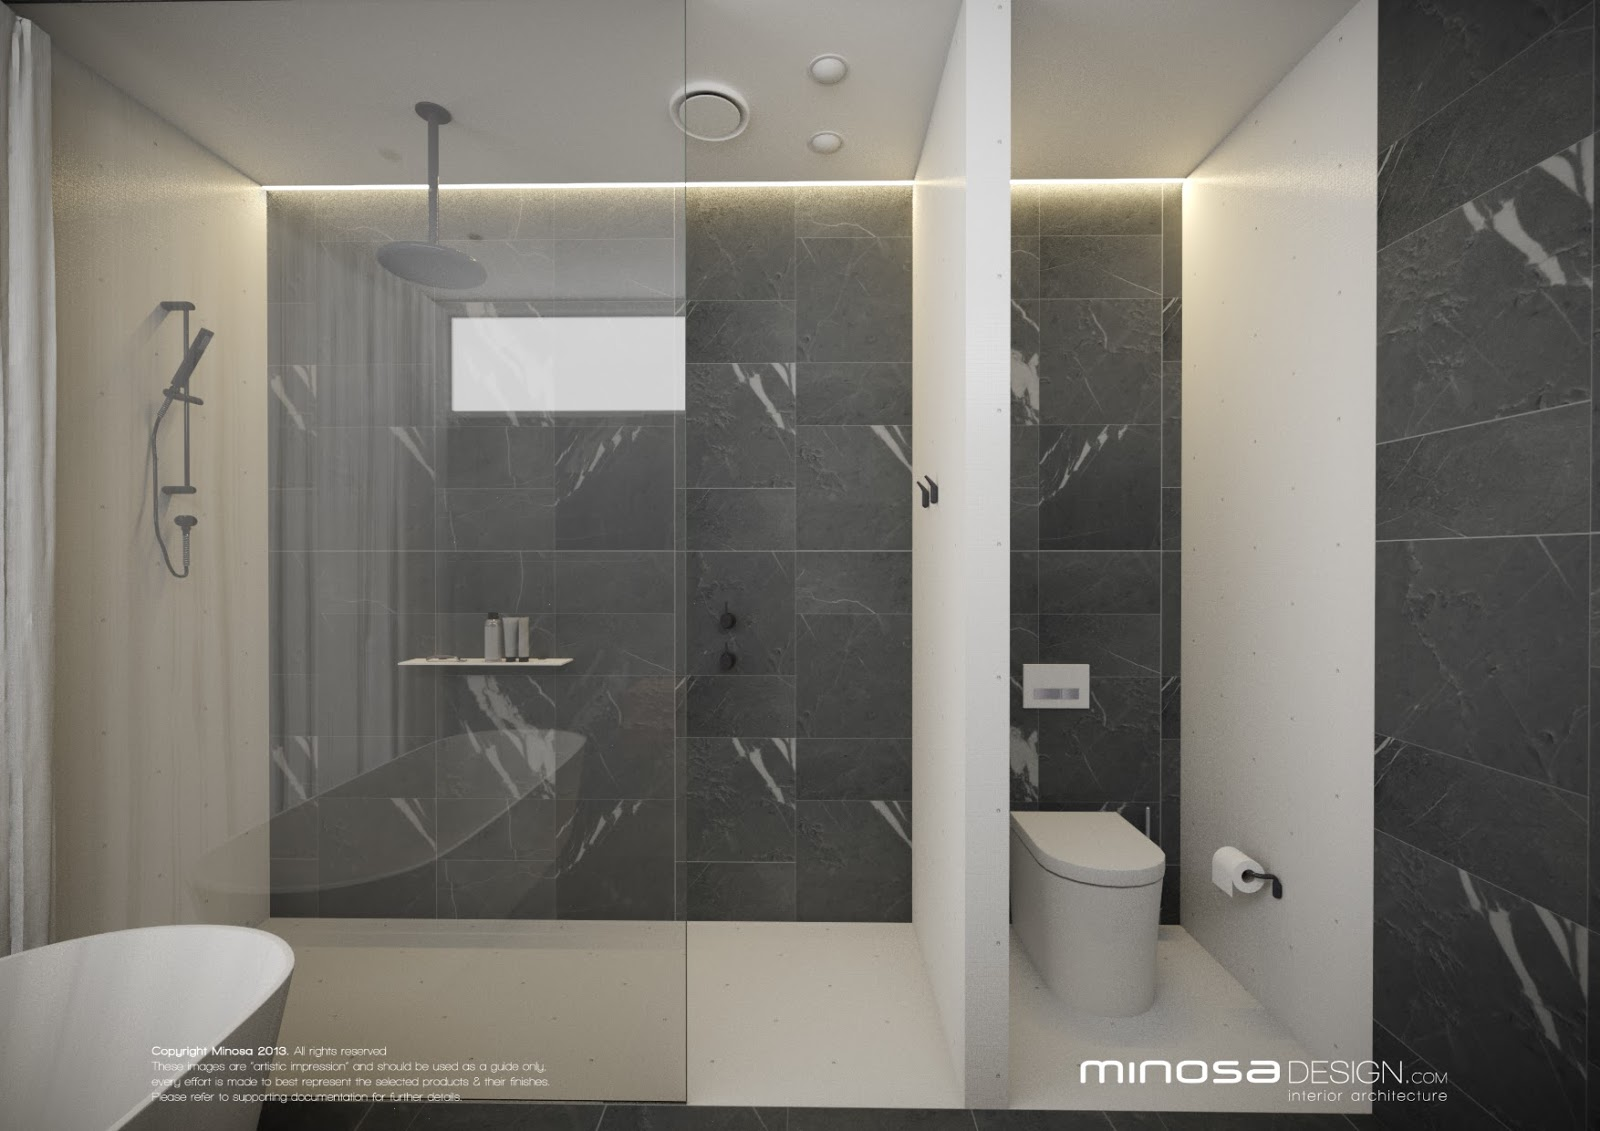 Minosa Modern Bathroom Design To Share - Modern-bathroom-designs